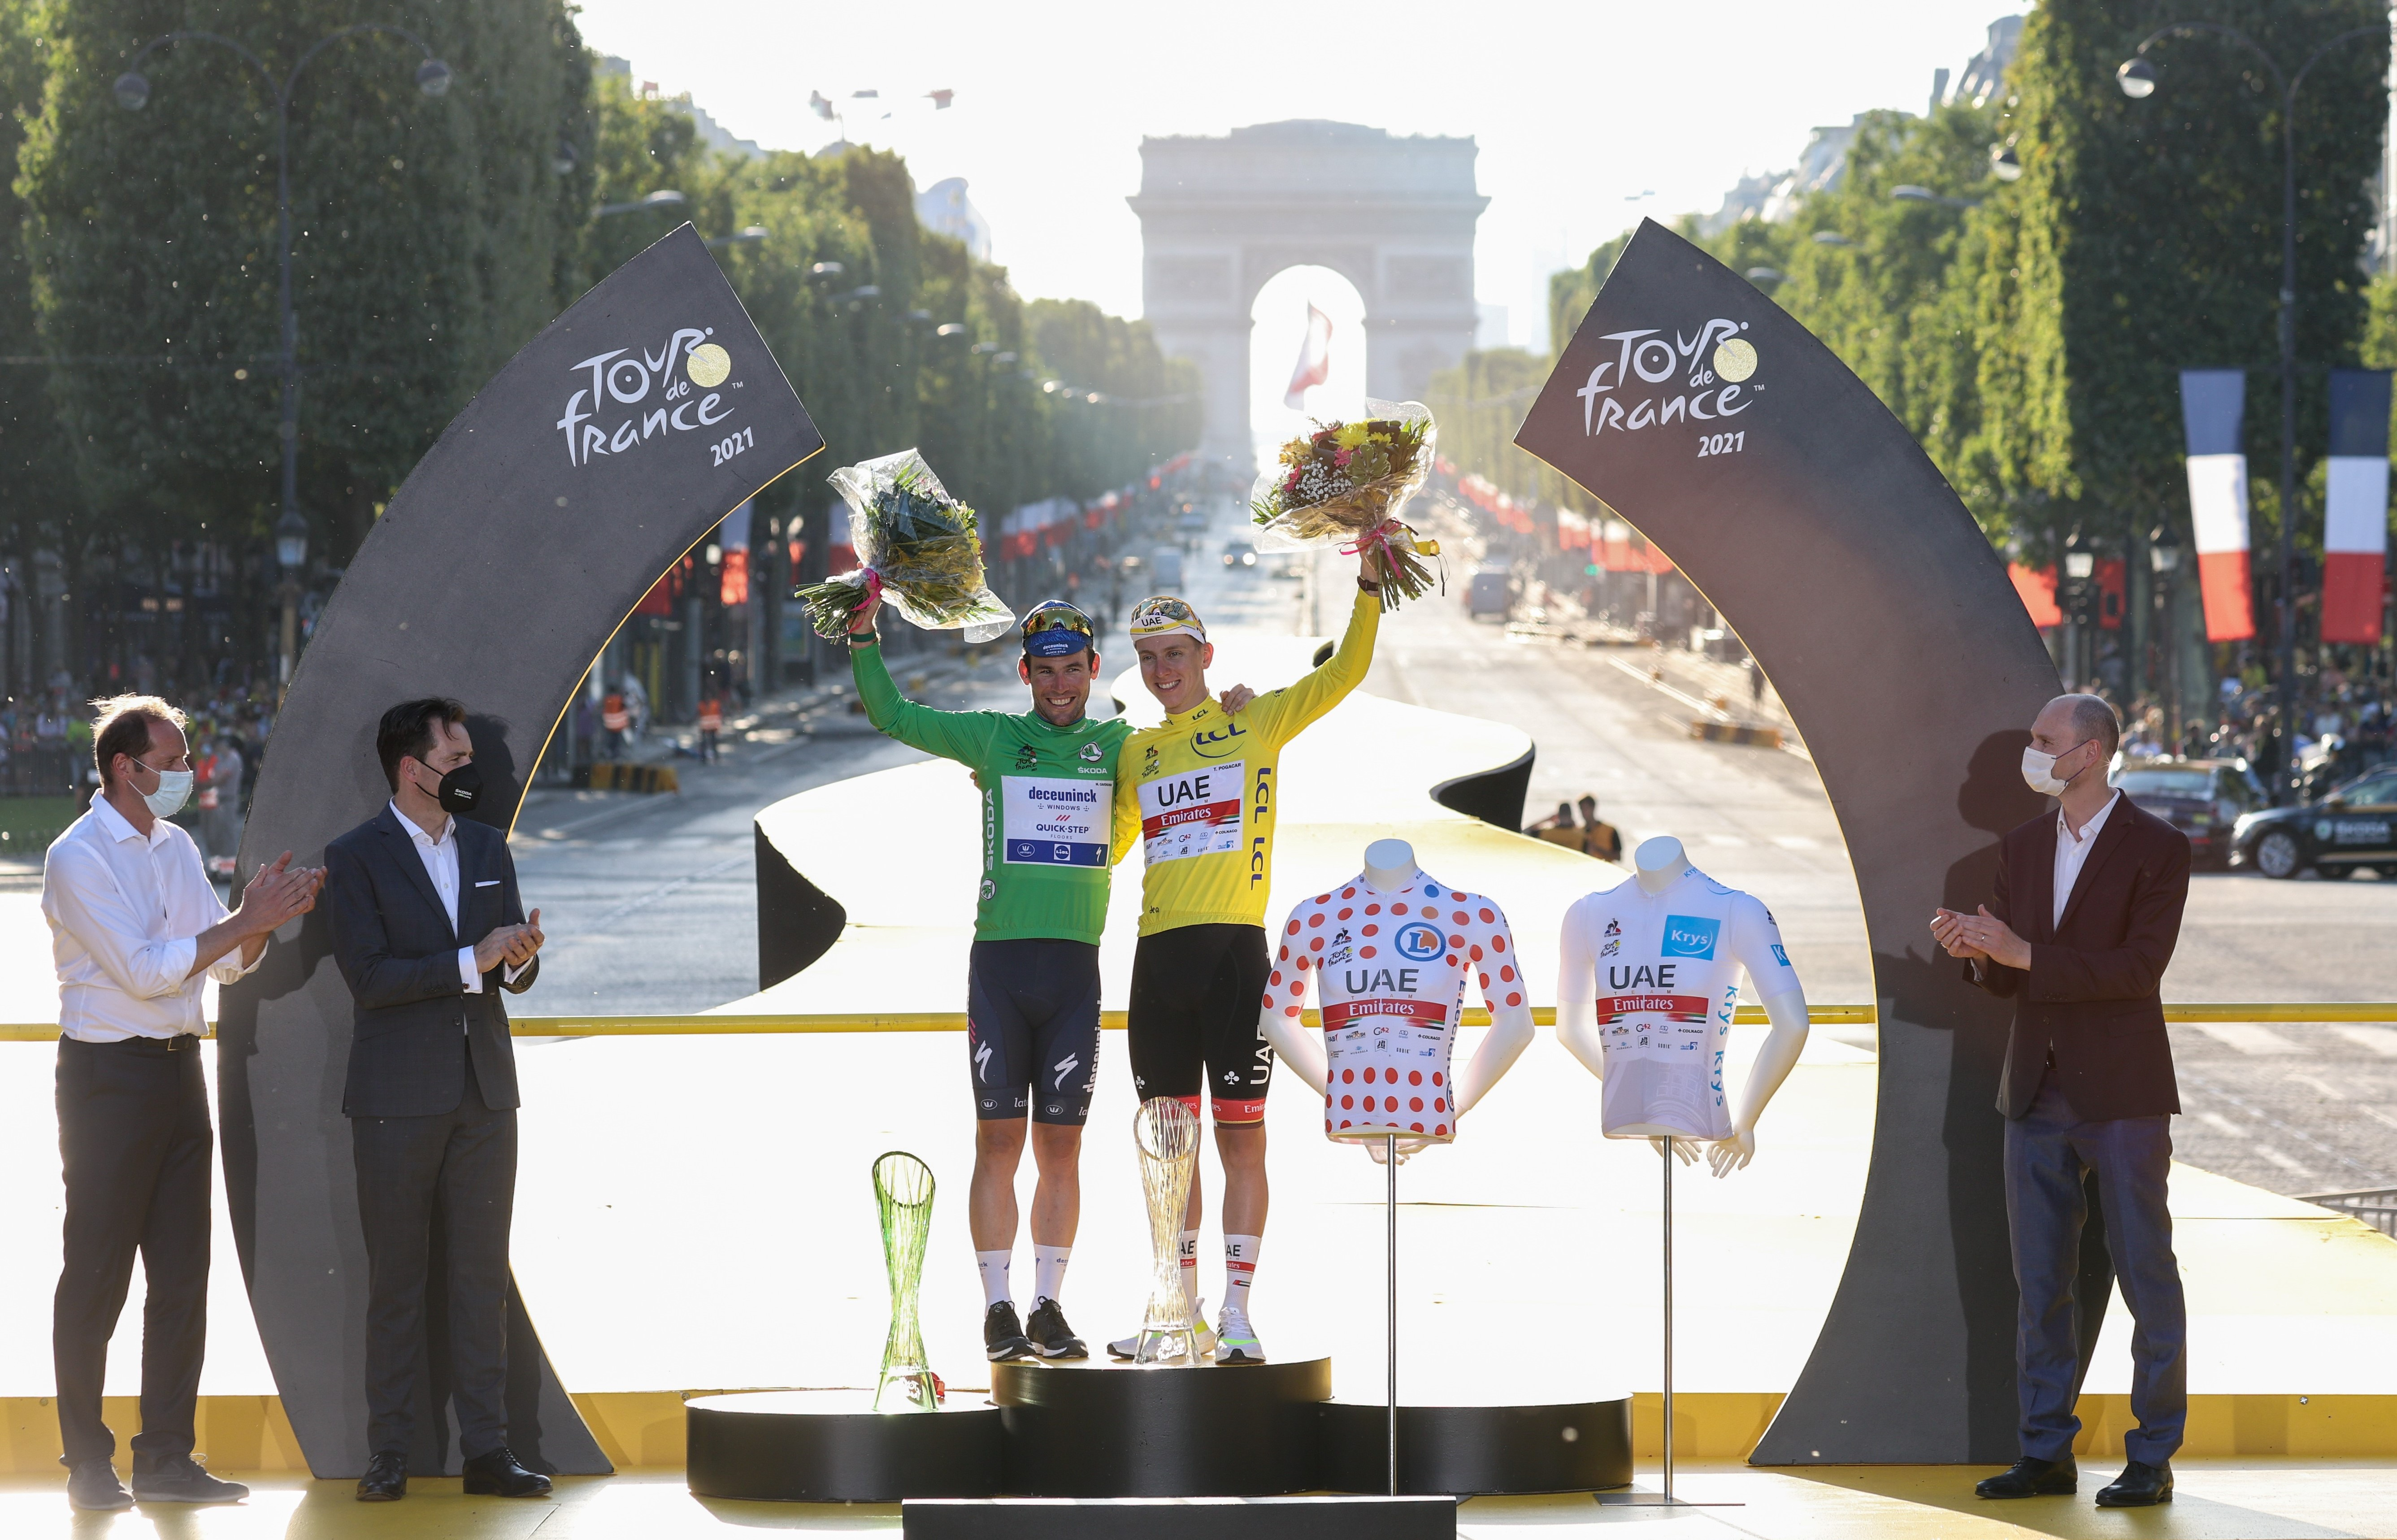 Winner of the 108th Tour de France Tadej Pogačar presented with crystal glass trophy by SKODA AUTO - Image 2